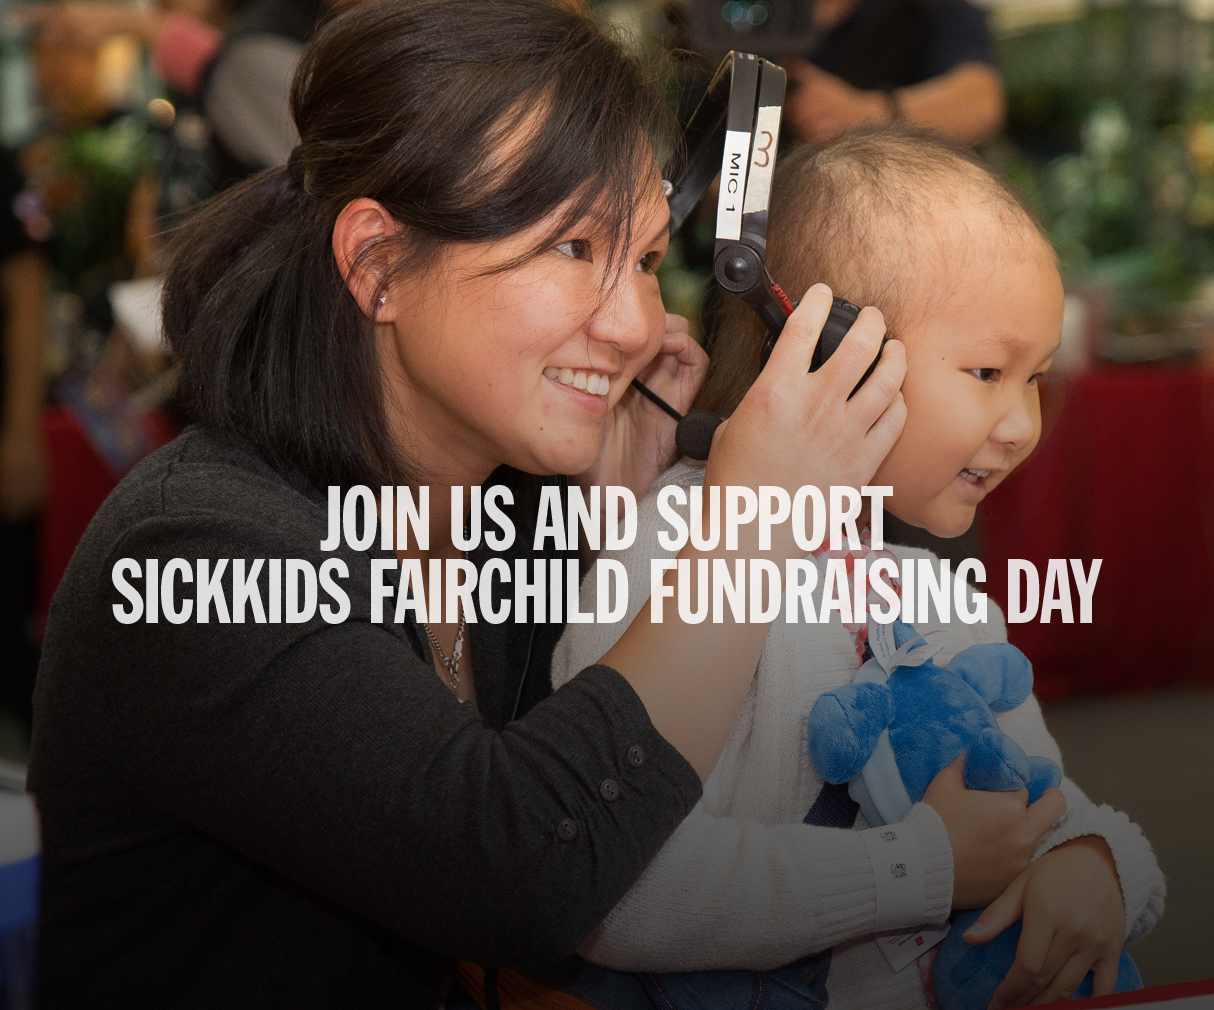 Fairchild Fundraising Day